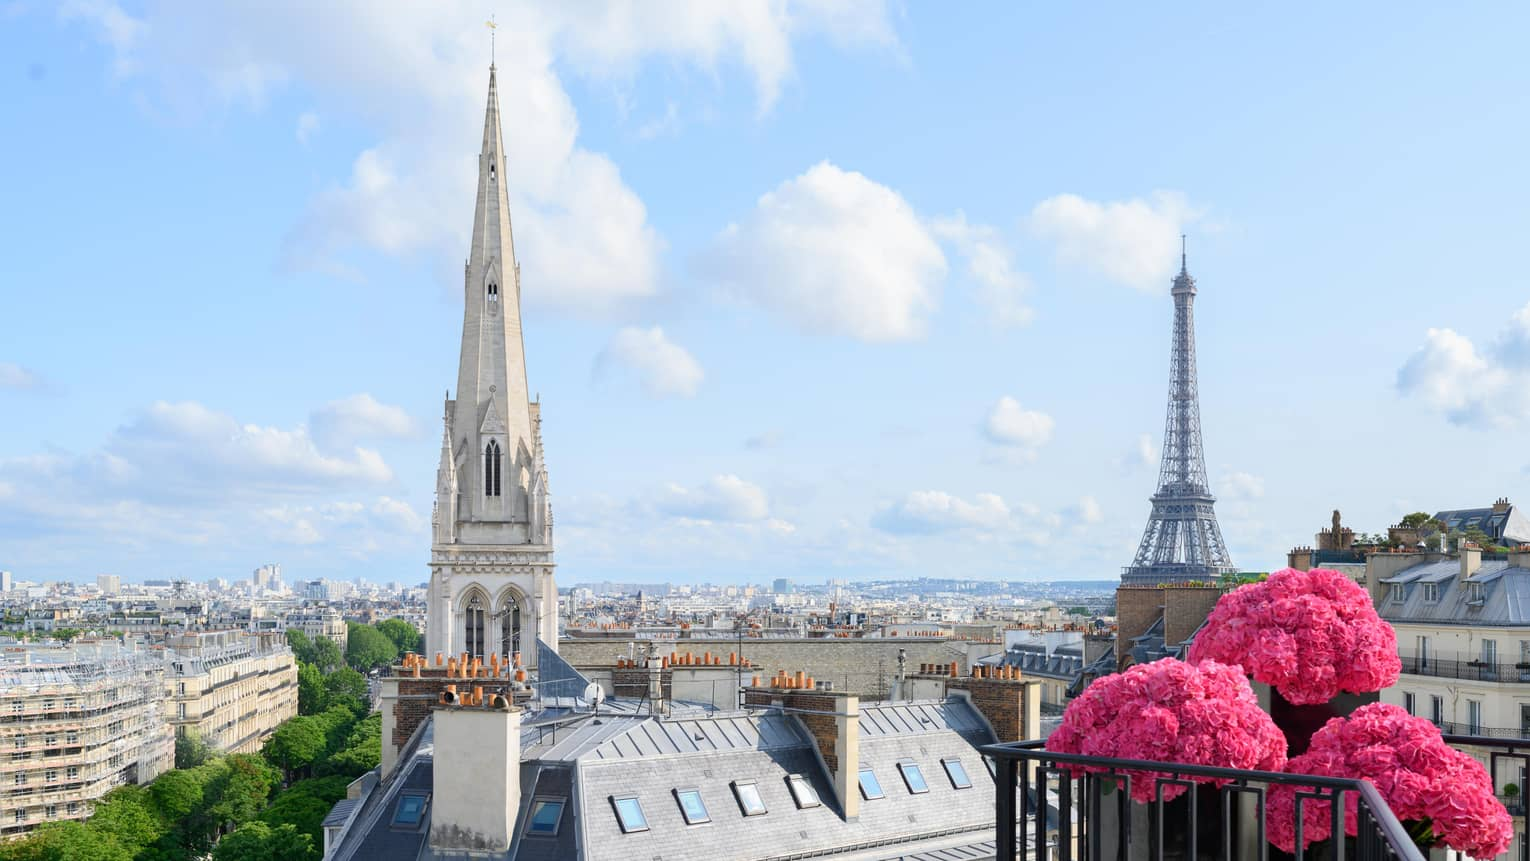 Pink flowers on balcony in front of Paris rooftops, cathedral and blue sky